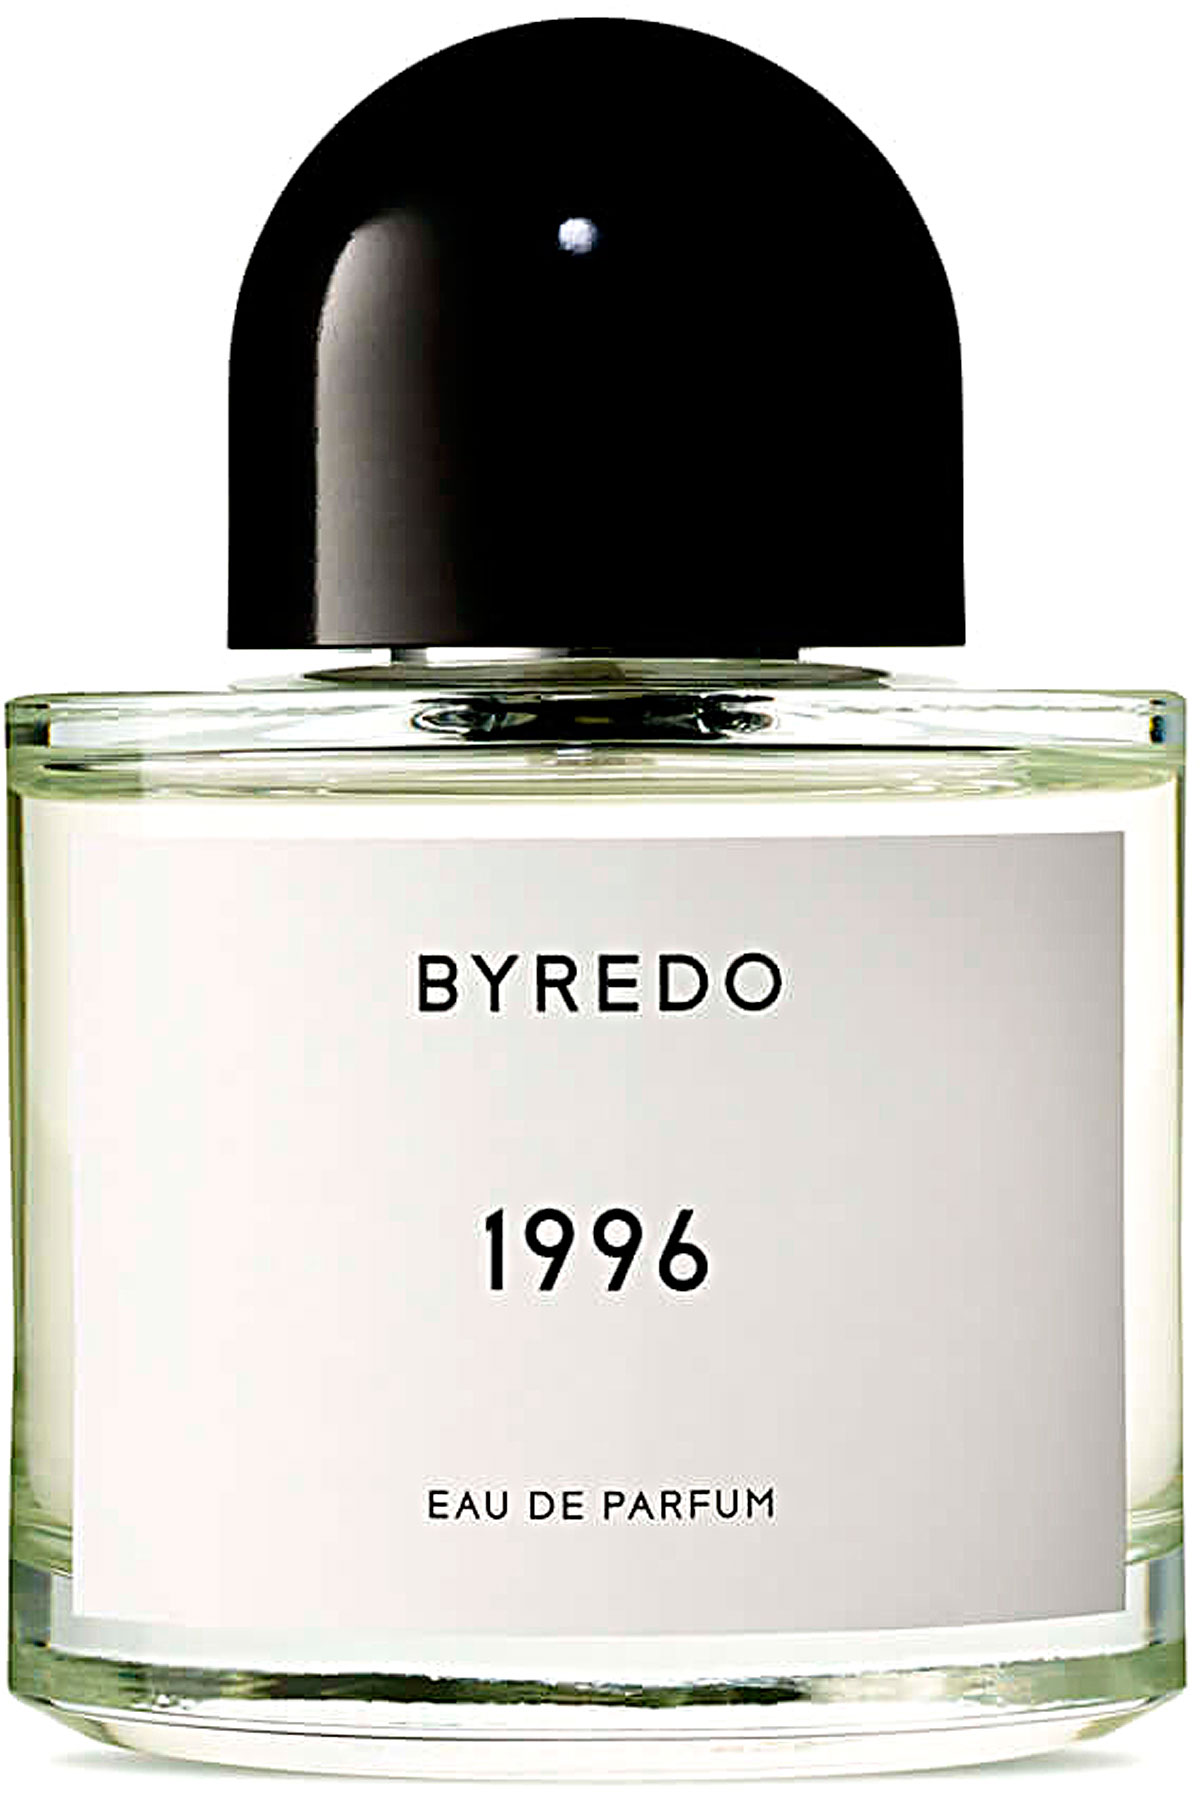 Byredo Fragrances for Men, 1996 - Eau De Parfum - 100 Ml, 2019, 100 ml